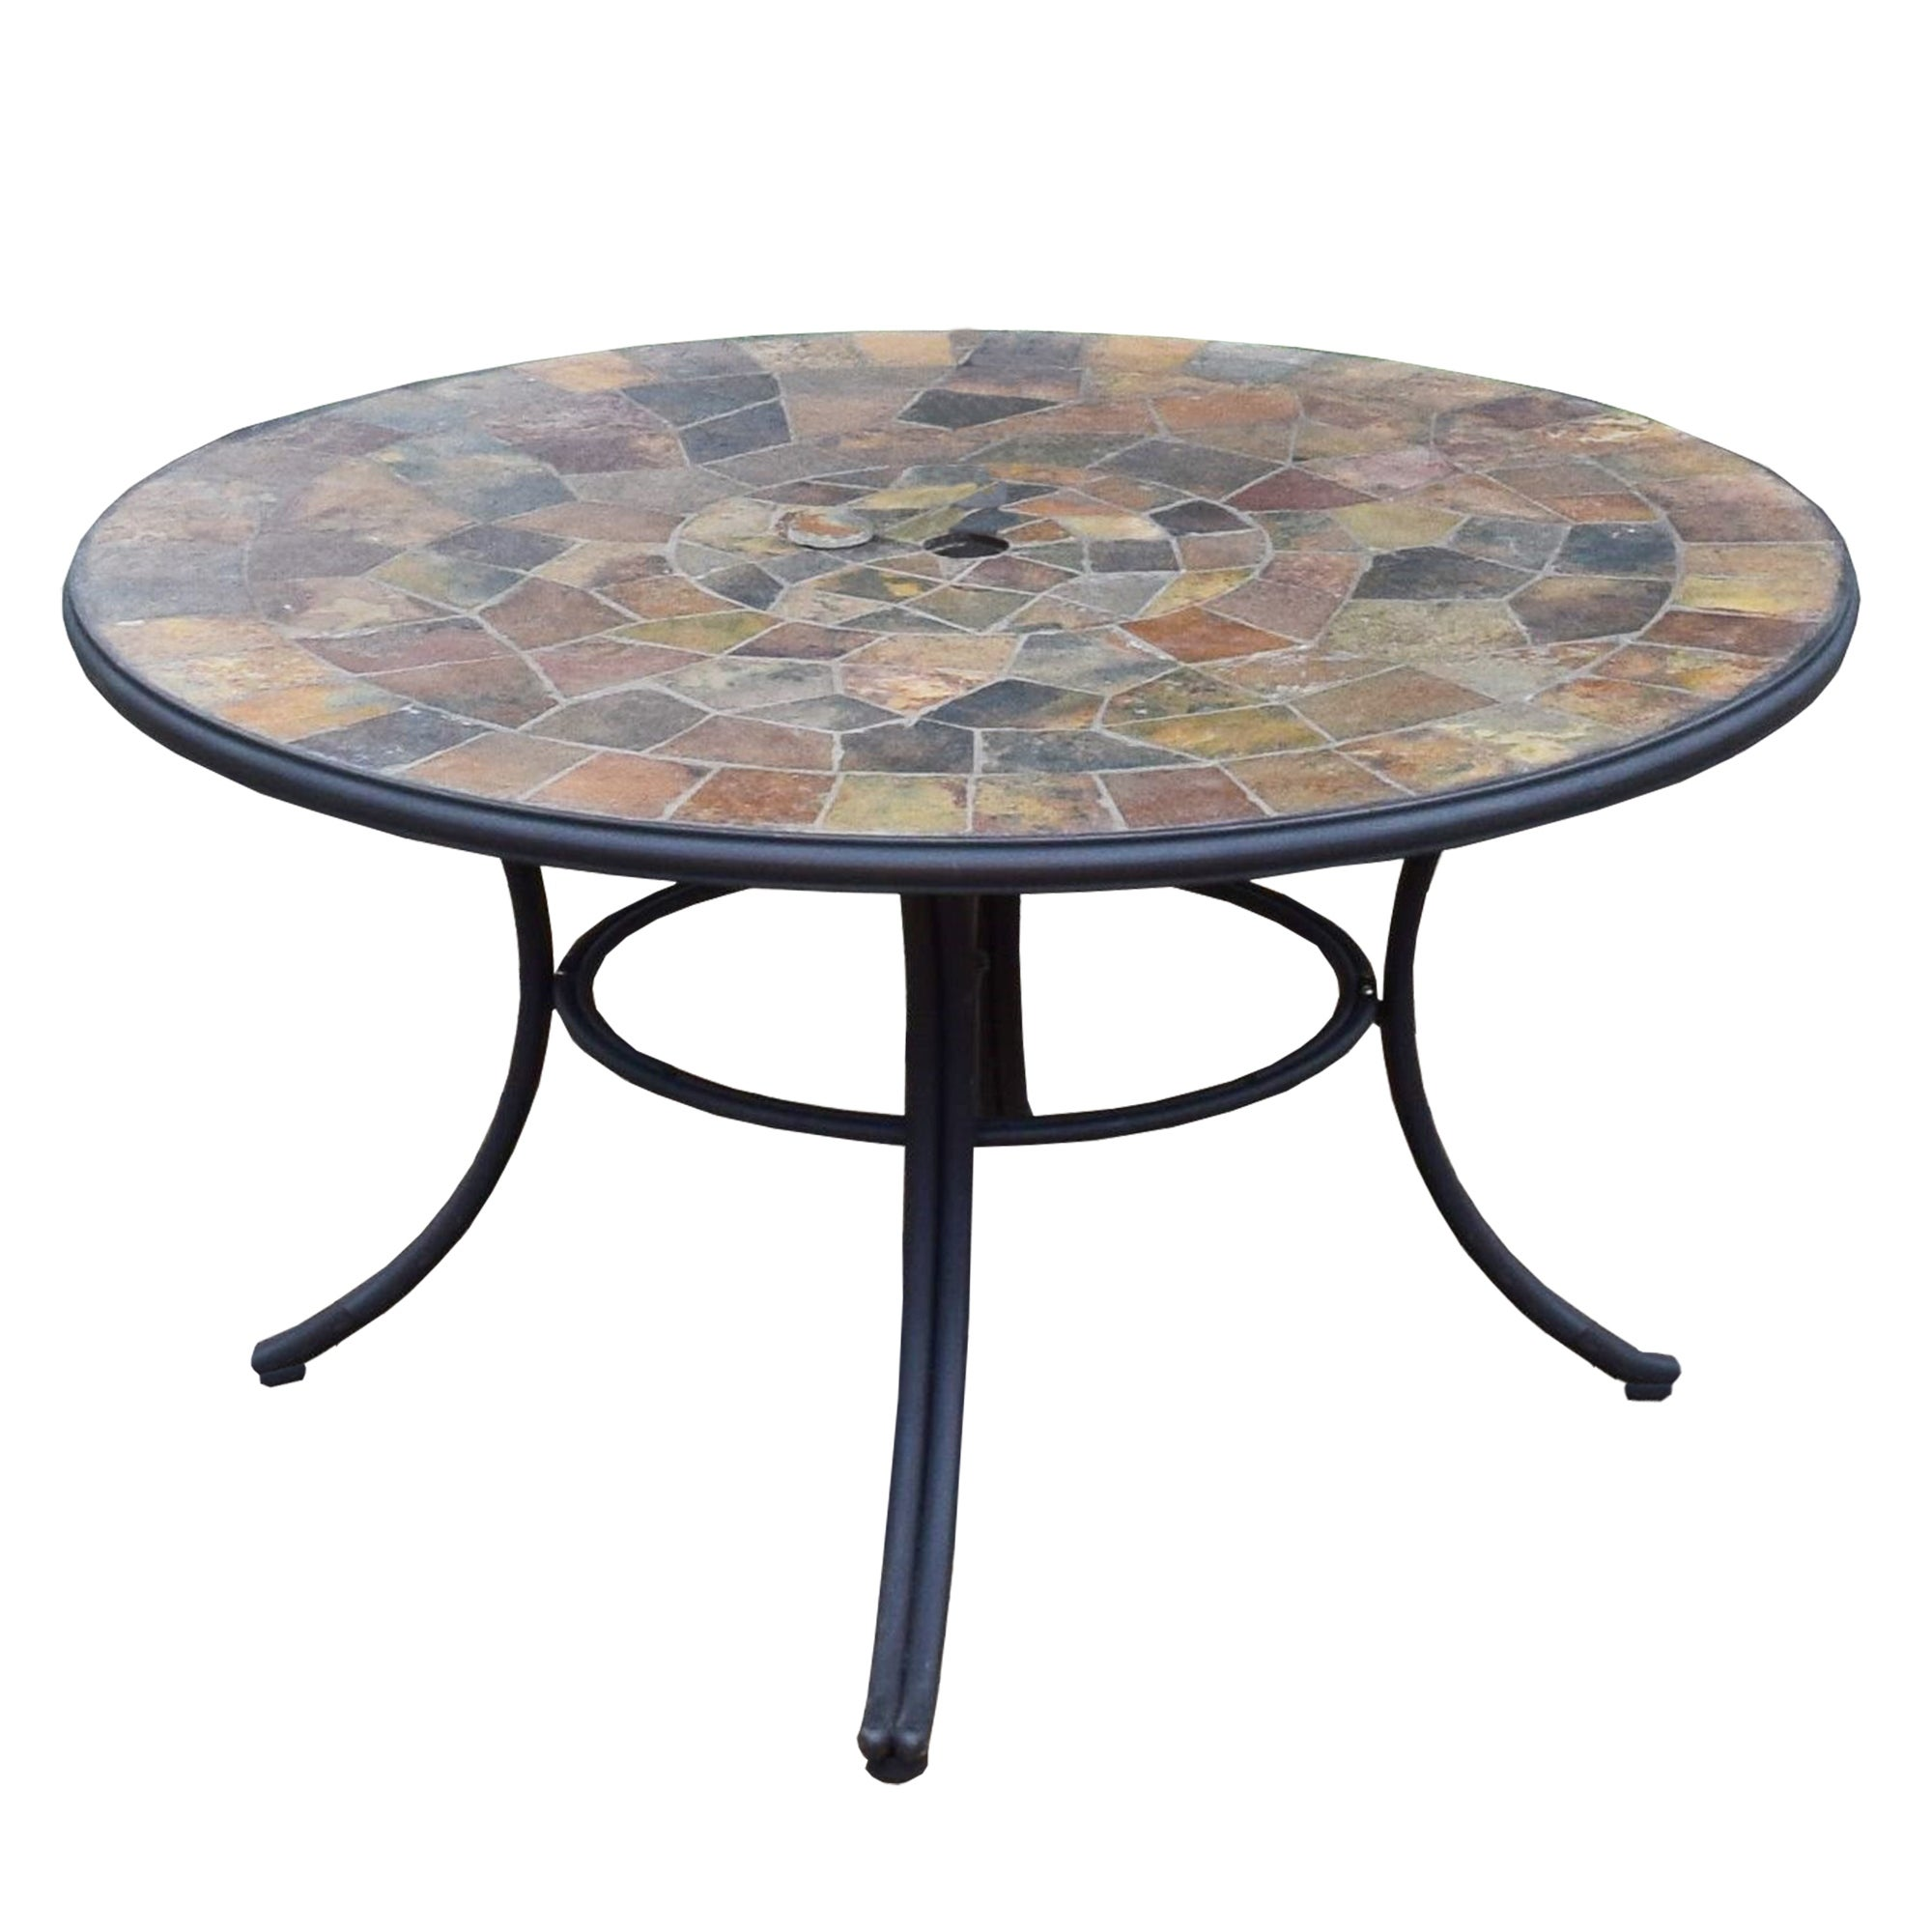 Black Stone Slate Round Outdoor 42 Inch Patio Deep Seating Dining Table Overstock 31781631